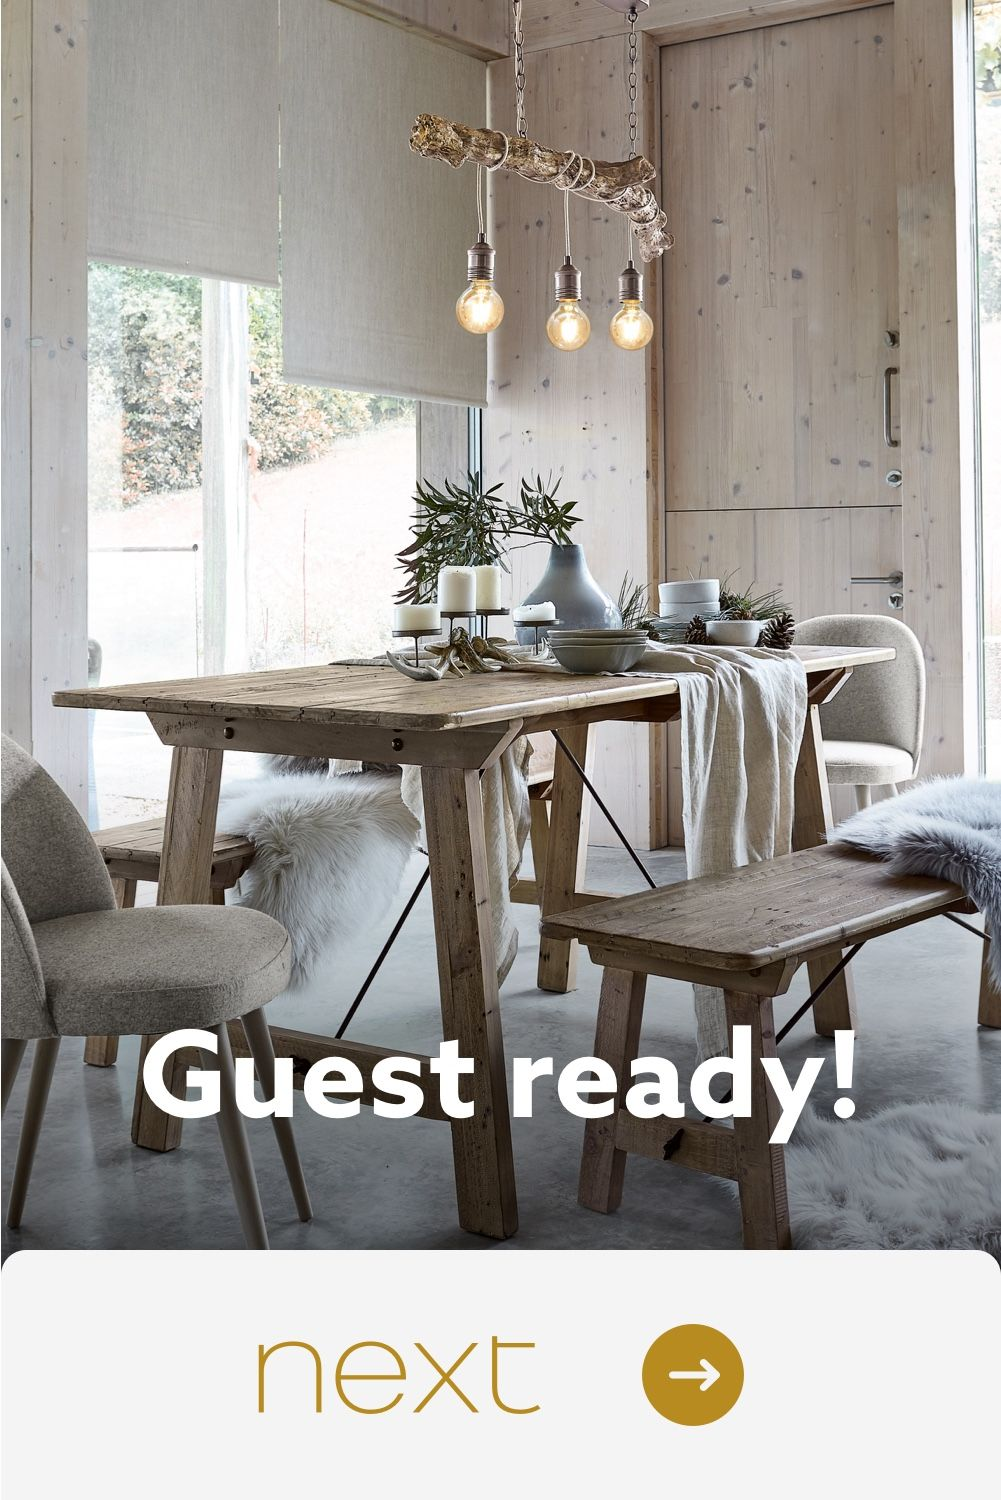 Next Dine in style with everything you need at Next